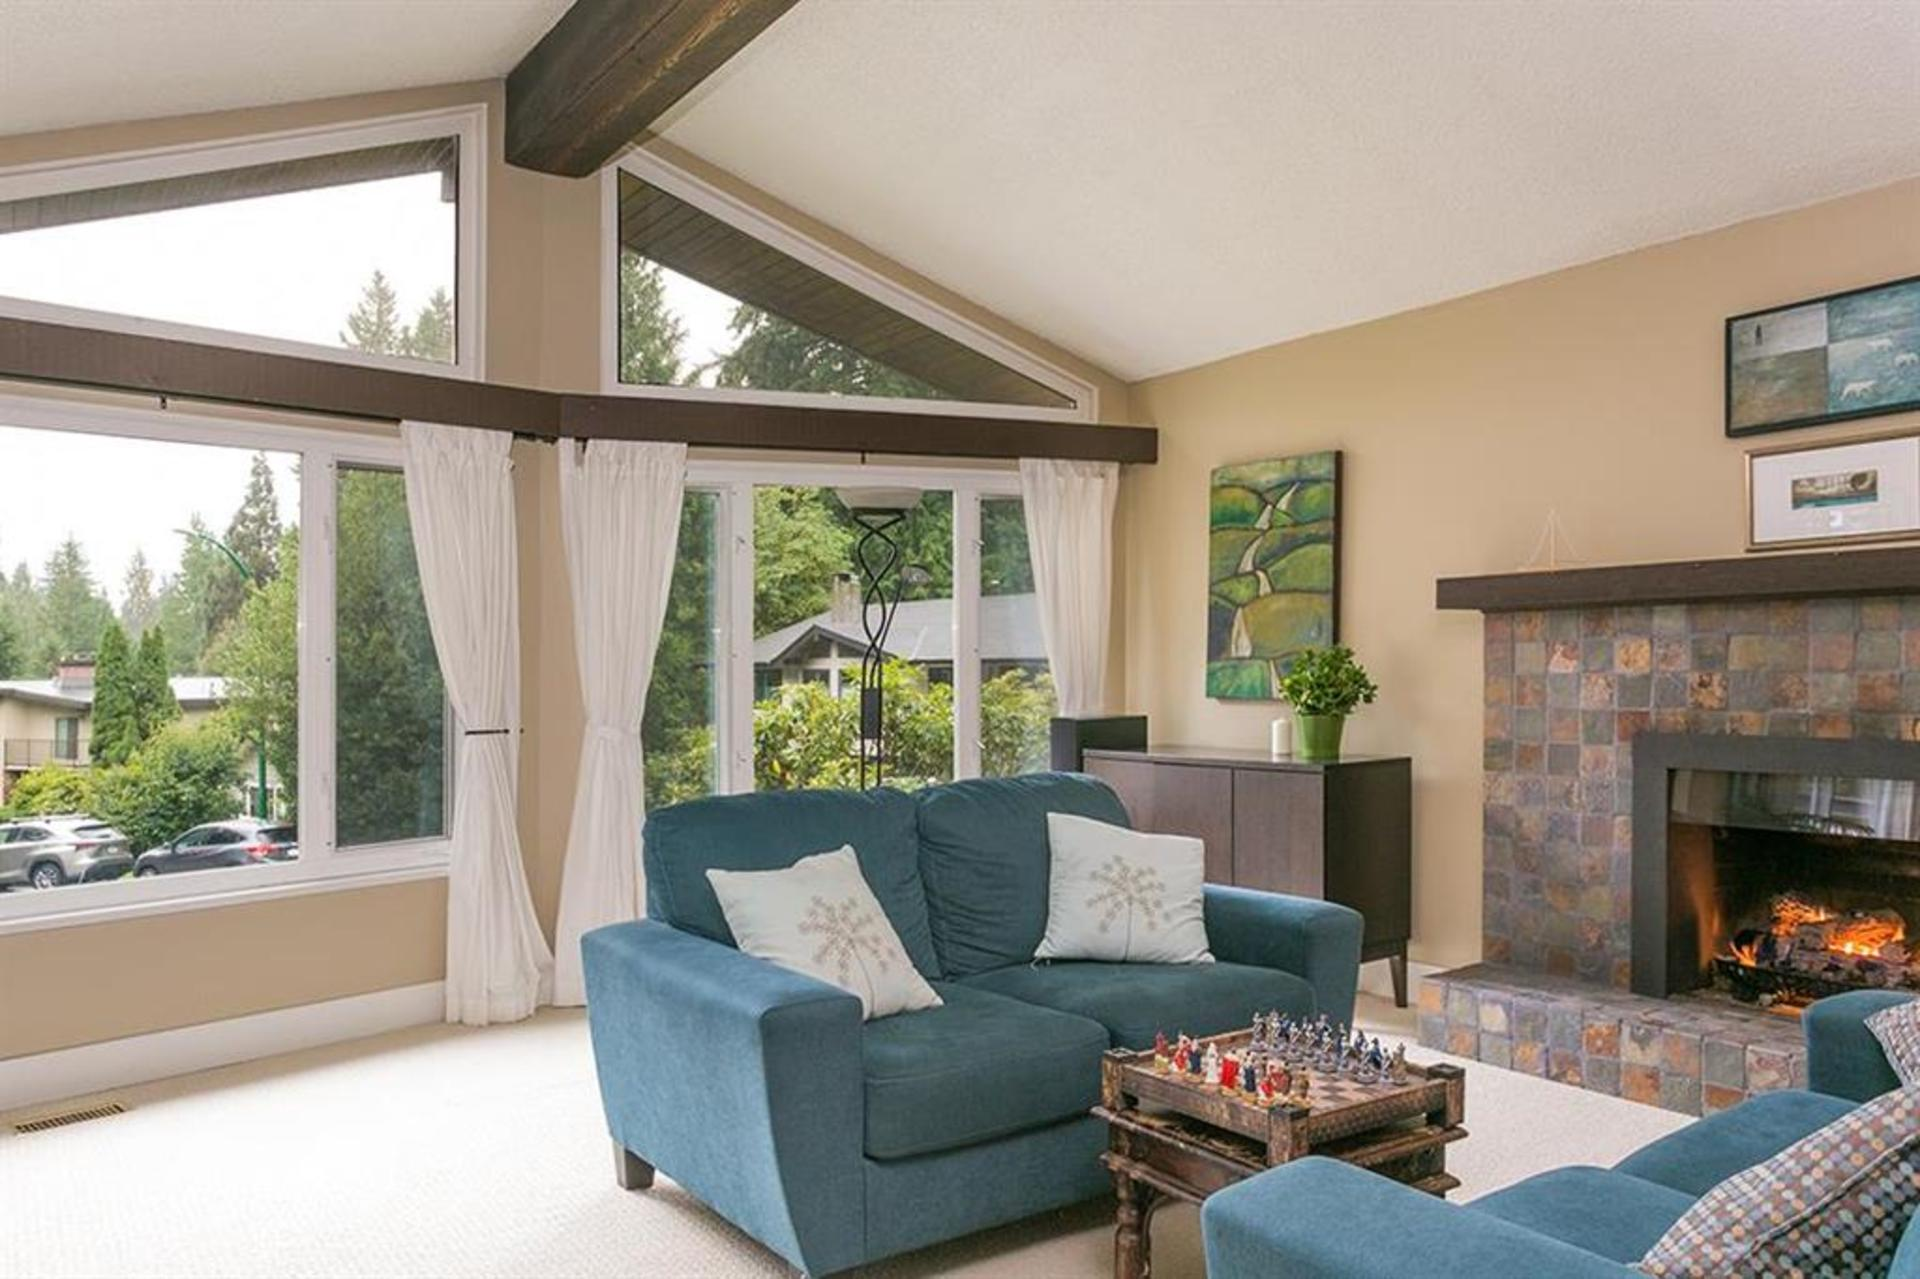 262429712-7 at 4549 Jerome Street, Lynn Valley, North Vancouver